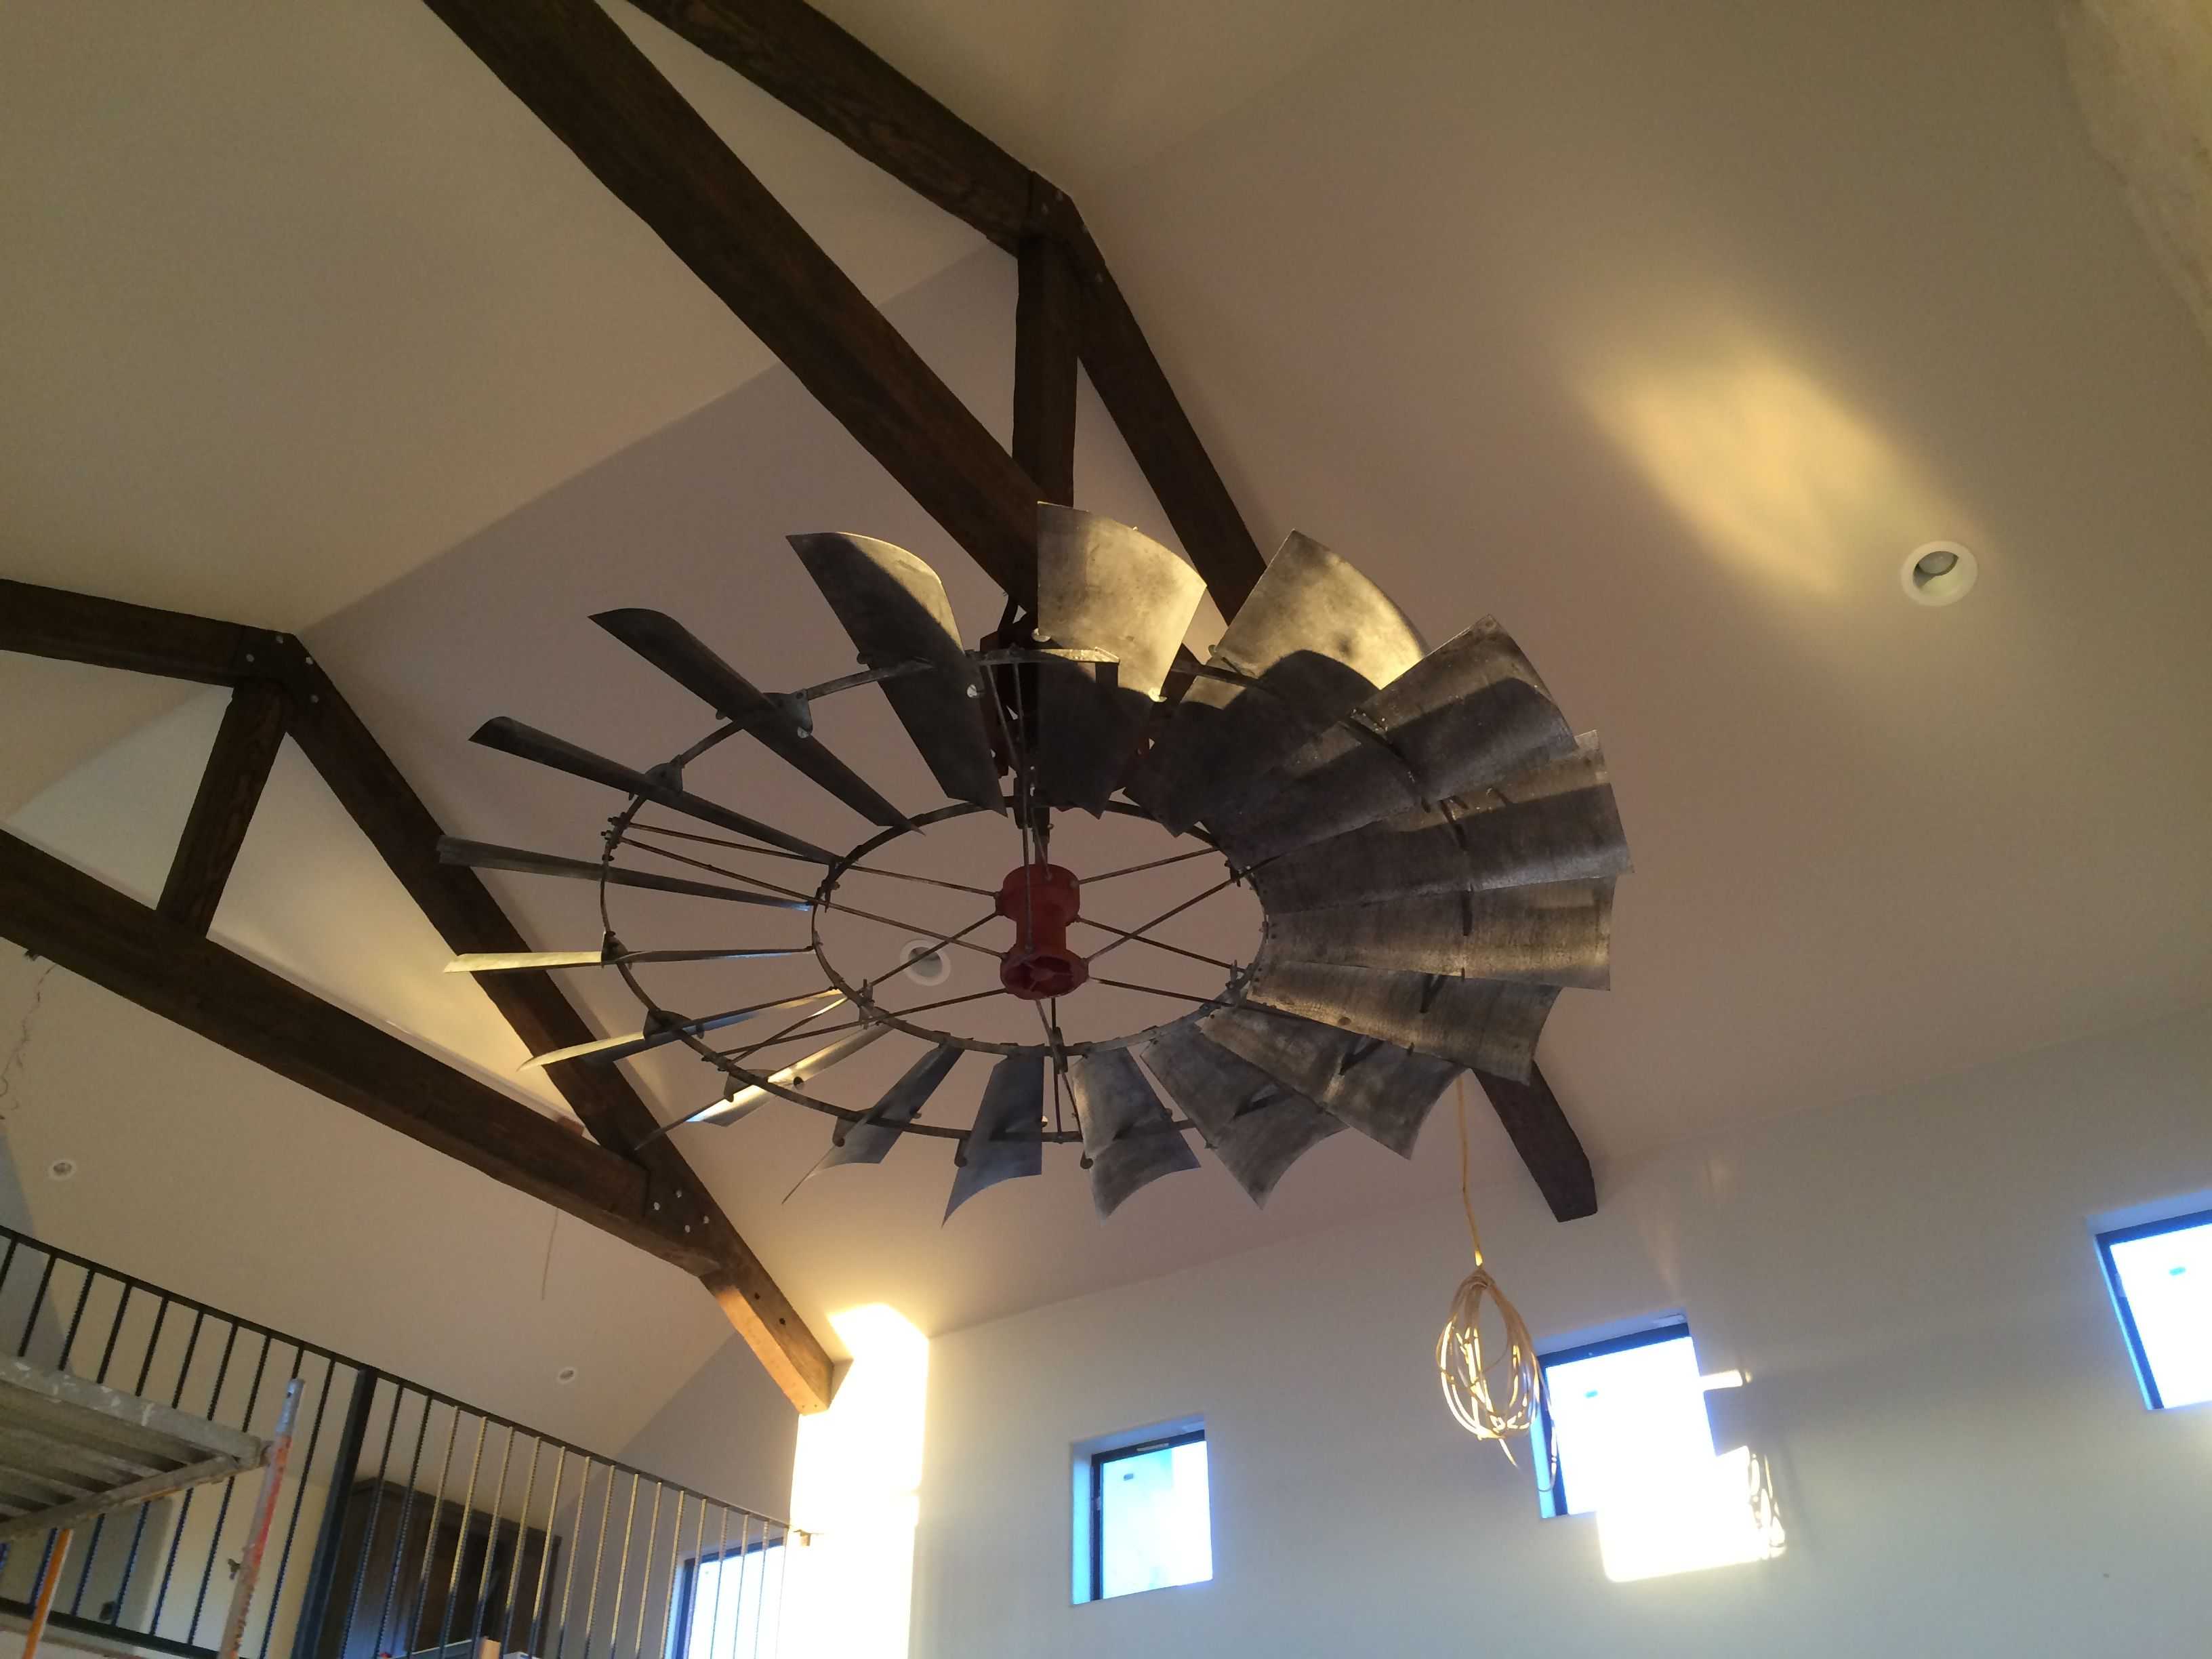 8 Reproduction Vintage Windmill Ceiling Fan WCFTX